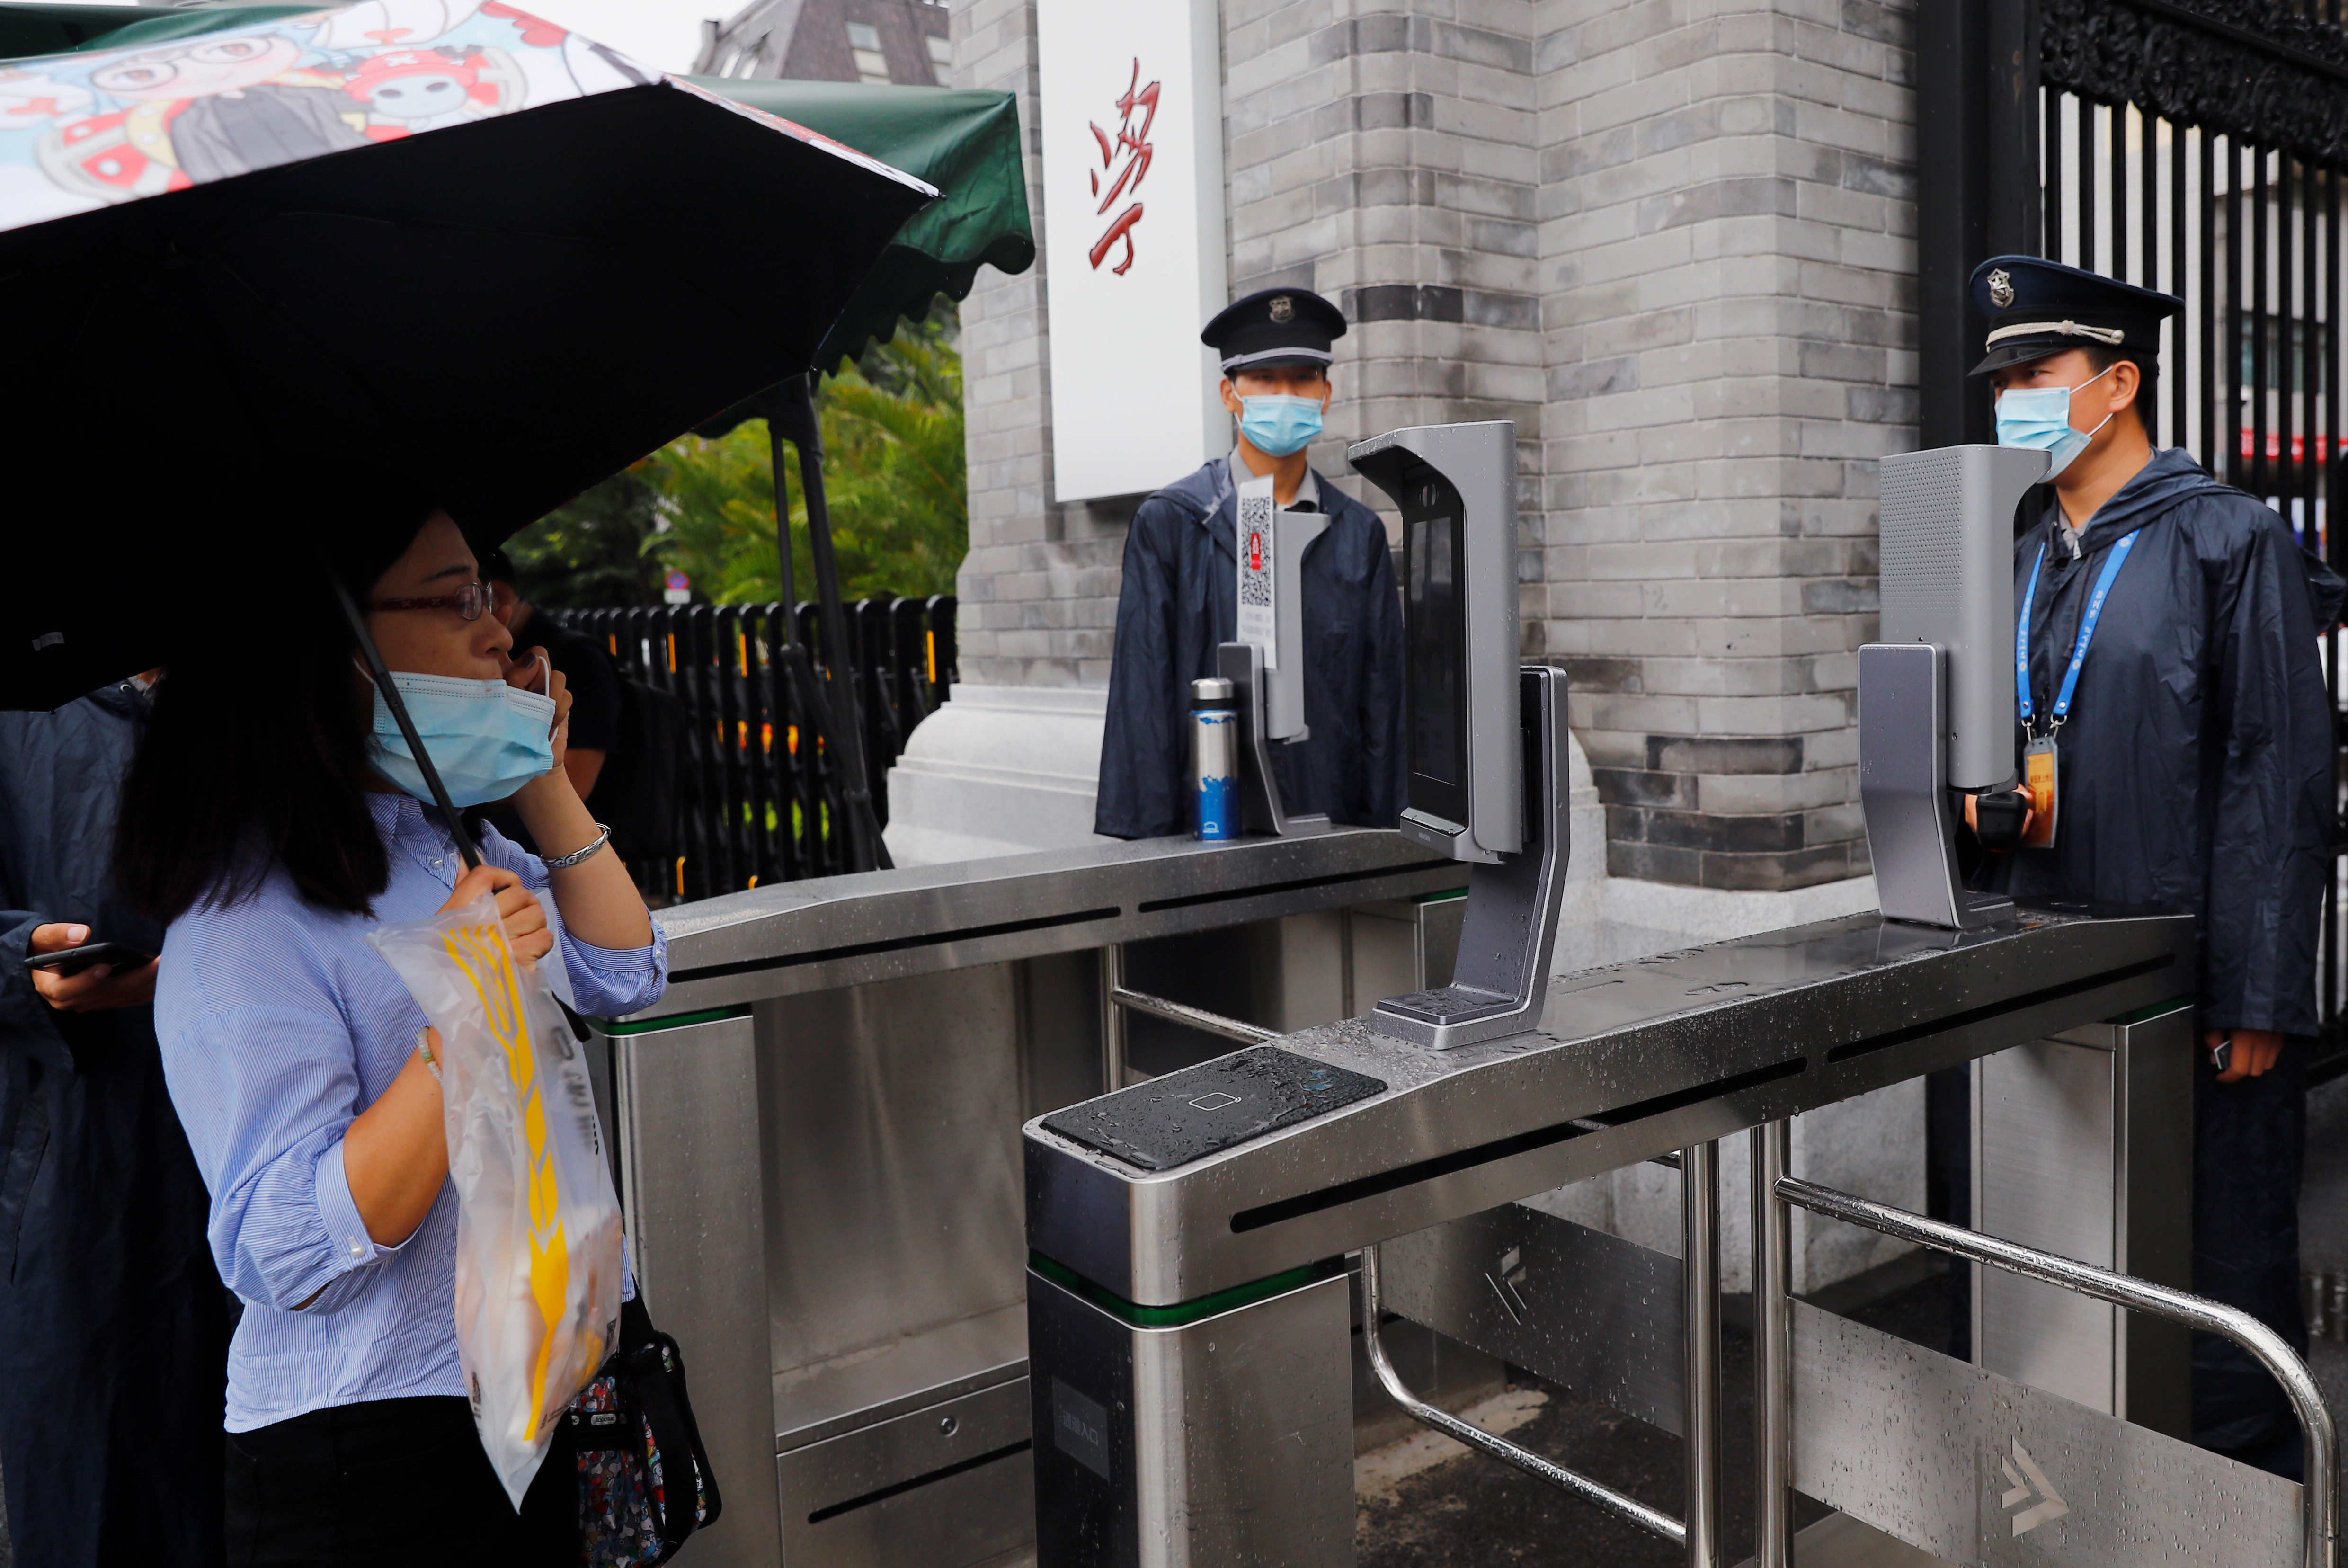 Students pass through a gate using facial recognition technology as they enter Peking University in Beijing, China, 31 August 2020.